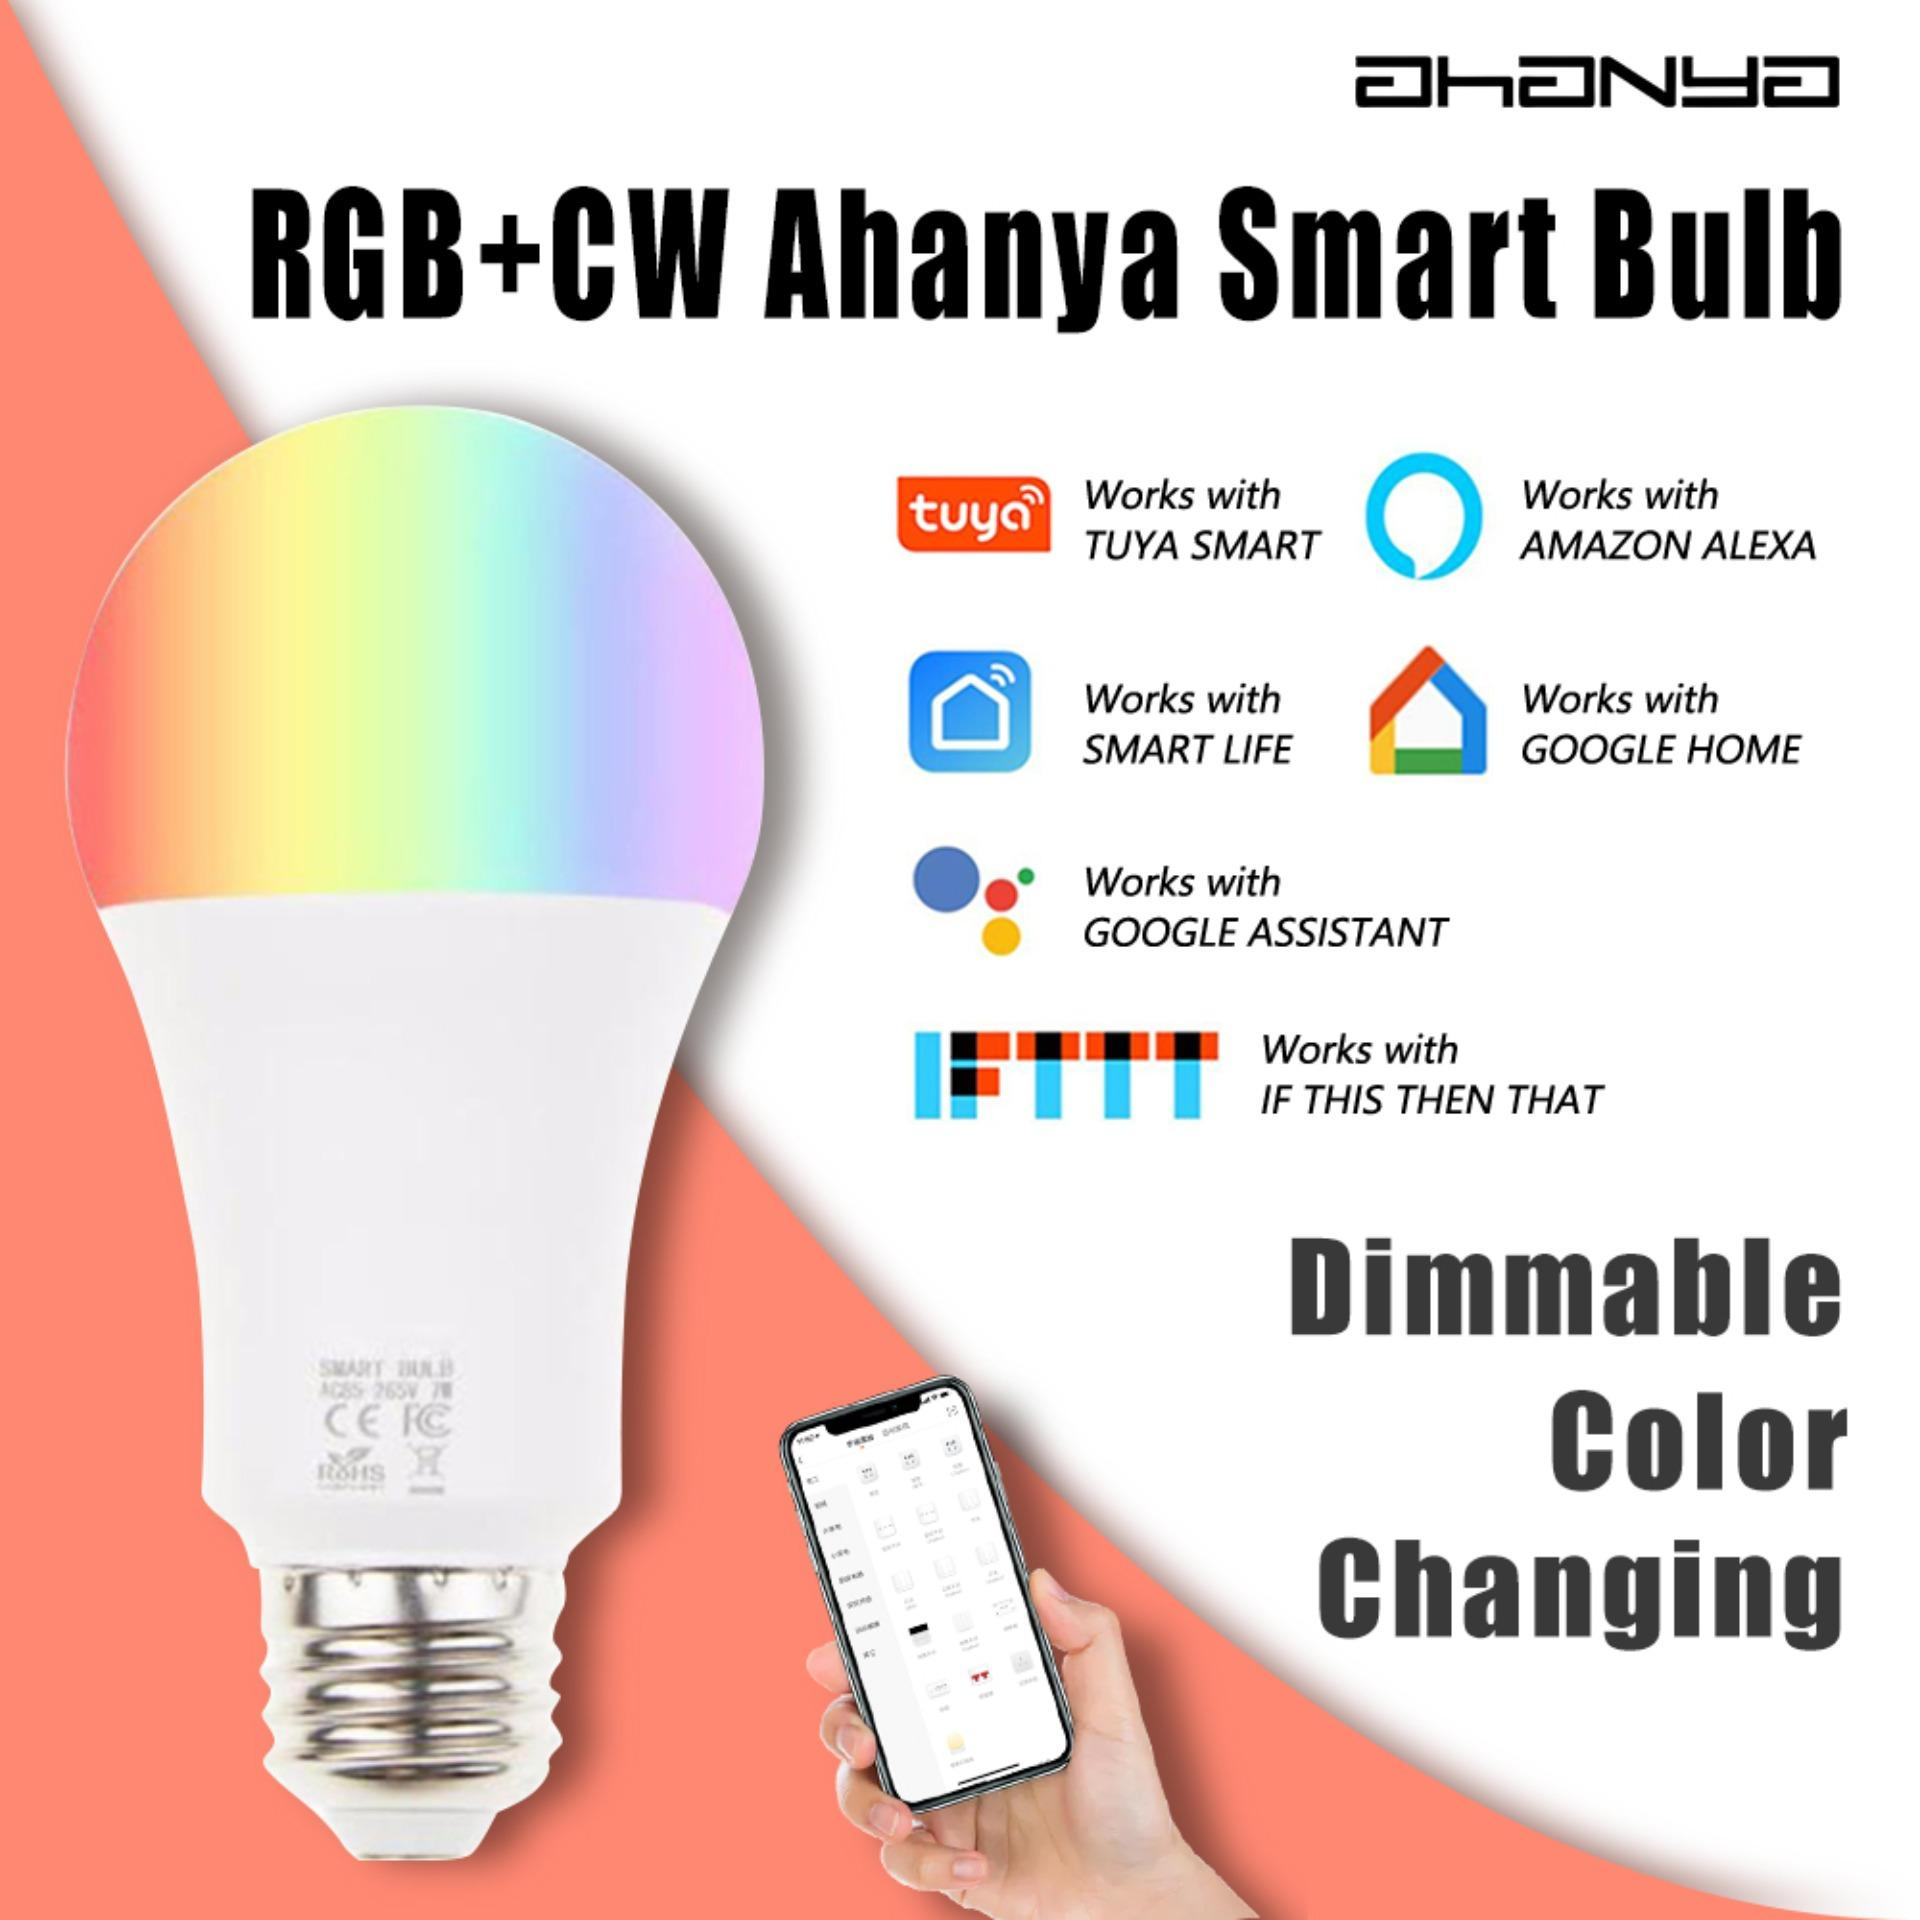 WiFi Smart Light Bulb Dimmable Multi-color APP Controlled Led Lamp No Hub  Required 7 Watts RGBW LED color changing - Works With Alexa Google Home